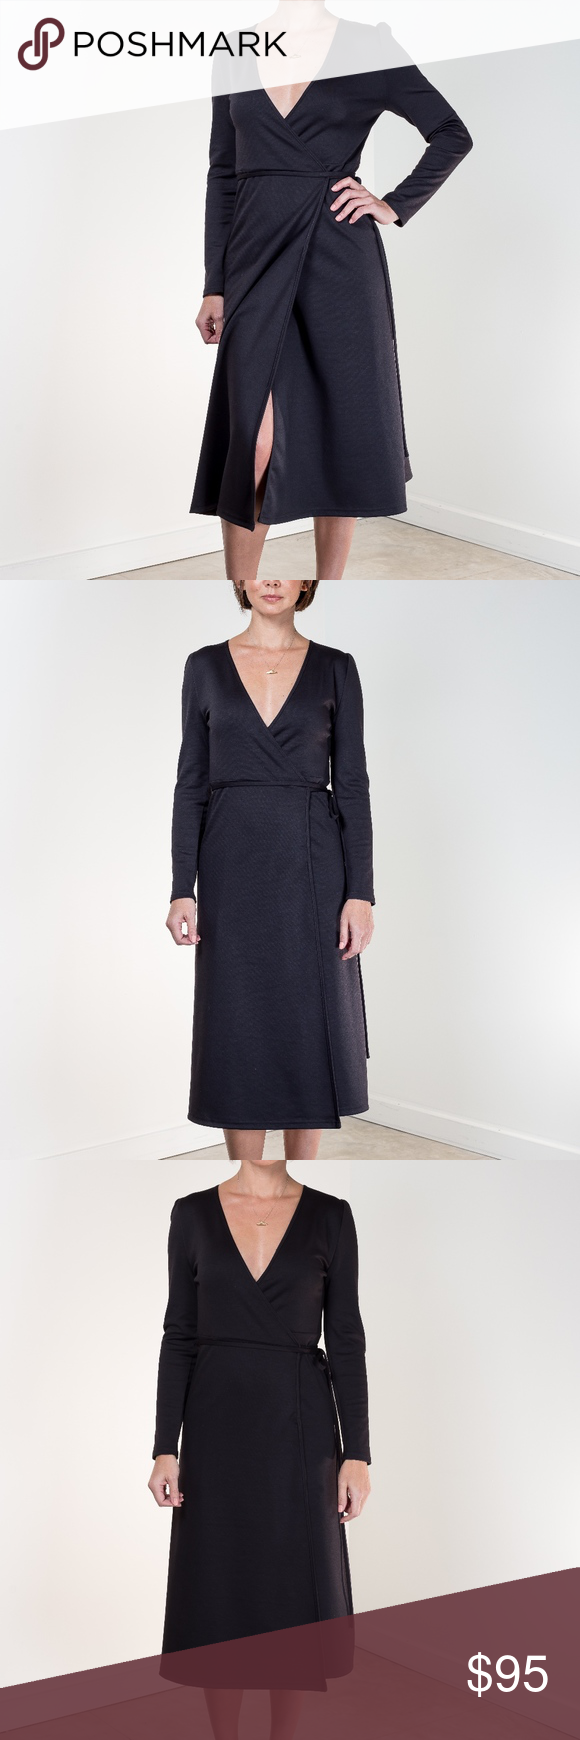 Emerson Fry Ballet Dress size L NWT Inspired by the iconic wrap dress of the 1970's, the Ballet dress from Emerson Fry is reimagined in a black ponte knit with slight puff shoulder and a below-the-knee-length. Versatile and effortless, this dress doesn't wrinkle and holds its shape. Pair with a modern boot or a dainty slide.  Size Large measures: Center Back Length 45, Bust 36, Waist 34, Hip 42  Materials: double knit ponte: rayon/poly blend w/ 2% stretch Emerson Fry Dresses Long Sleeve #emersonfry